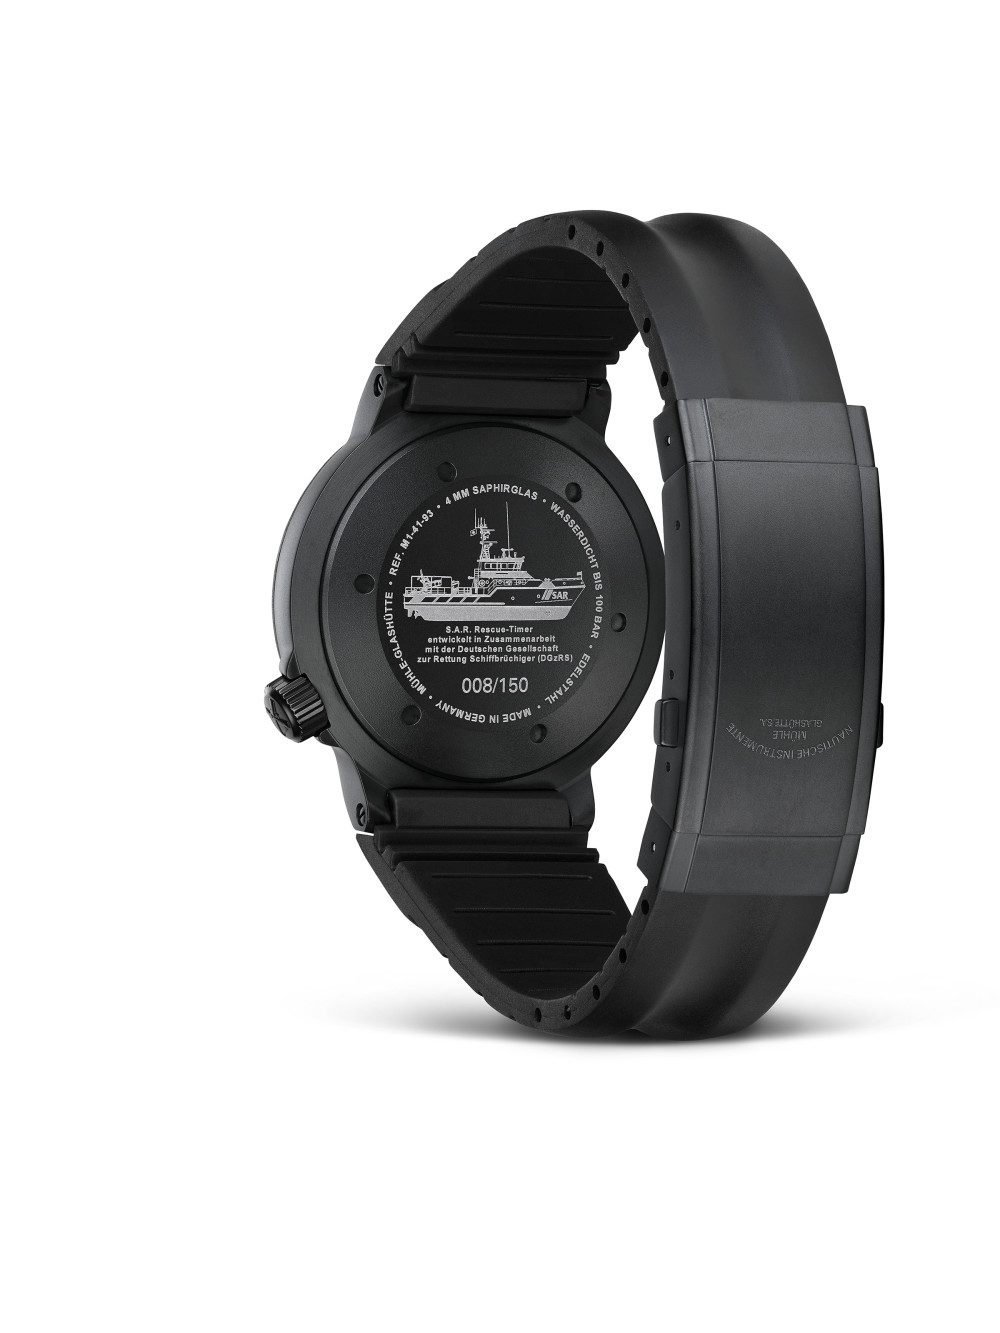 S.A.R. Rescue-Timer Sonderedition DGzRS 02